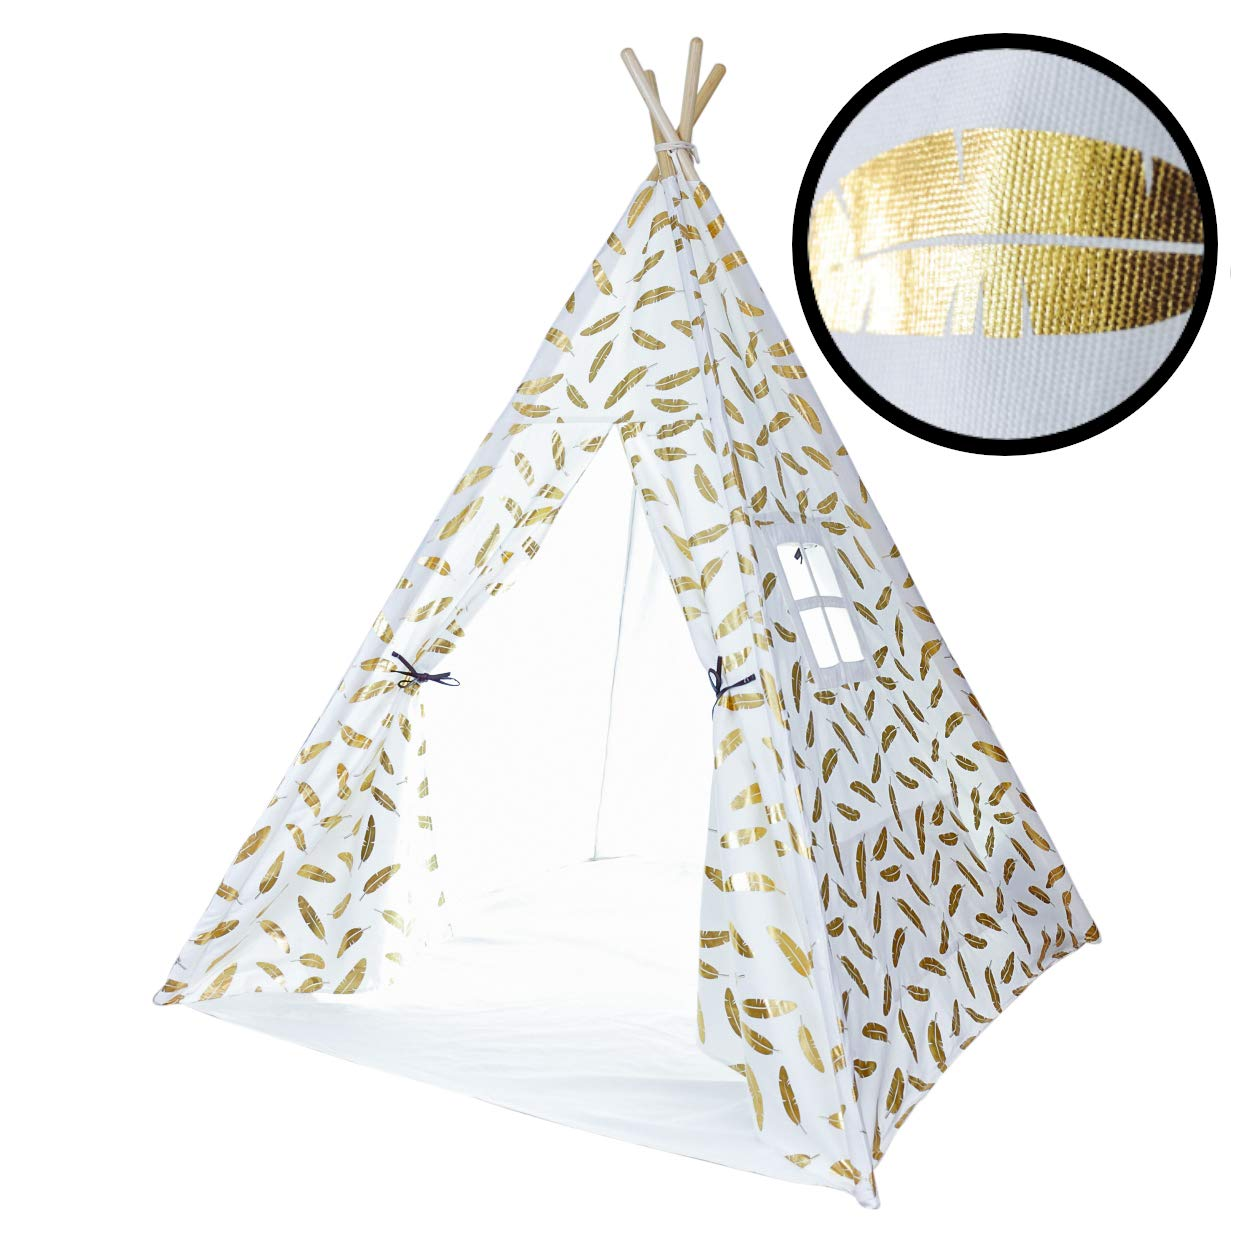 A Mustard Seed Toys Teepee Tent for Boys and Girls, Gold Feathers, Portable Playhouse with Canvas Carrying Case, No Extra Chemicals by A Mustard Seed Toys (Image #1)